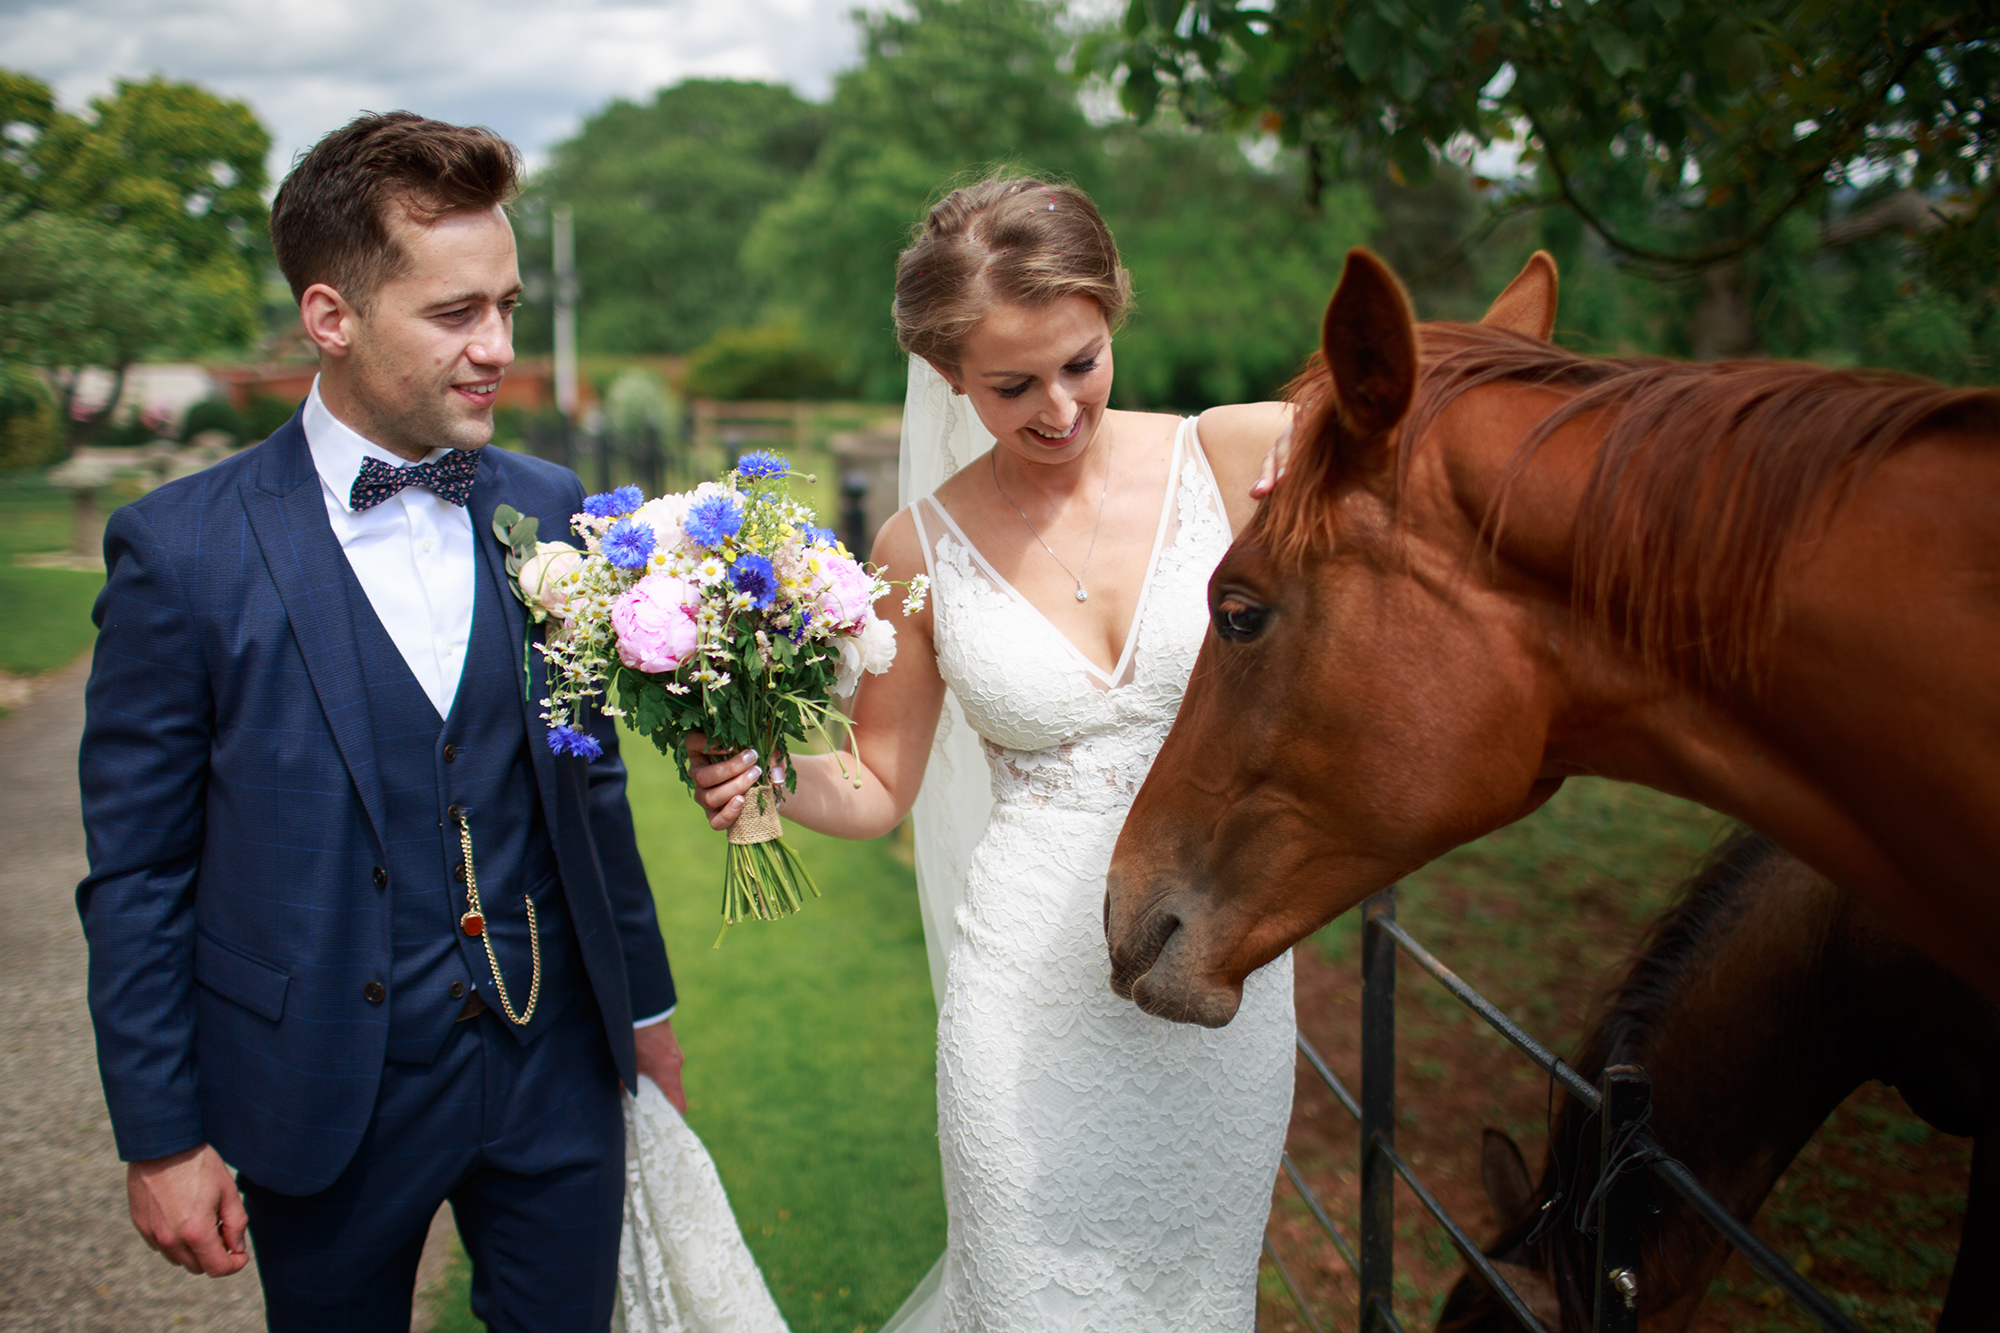 Groom stand by his bride as she strokes one of the horses at the paddaock